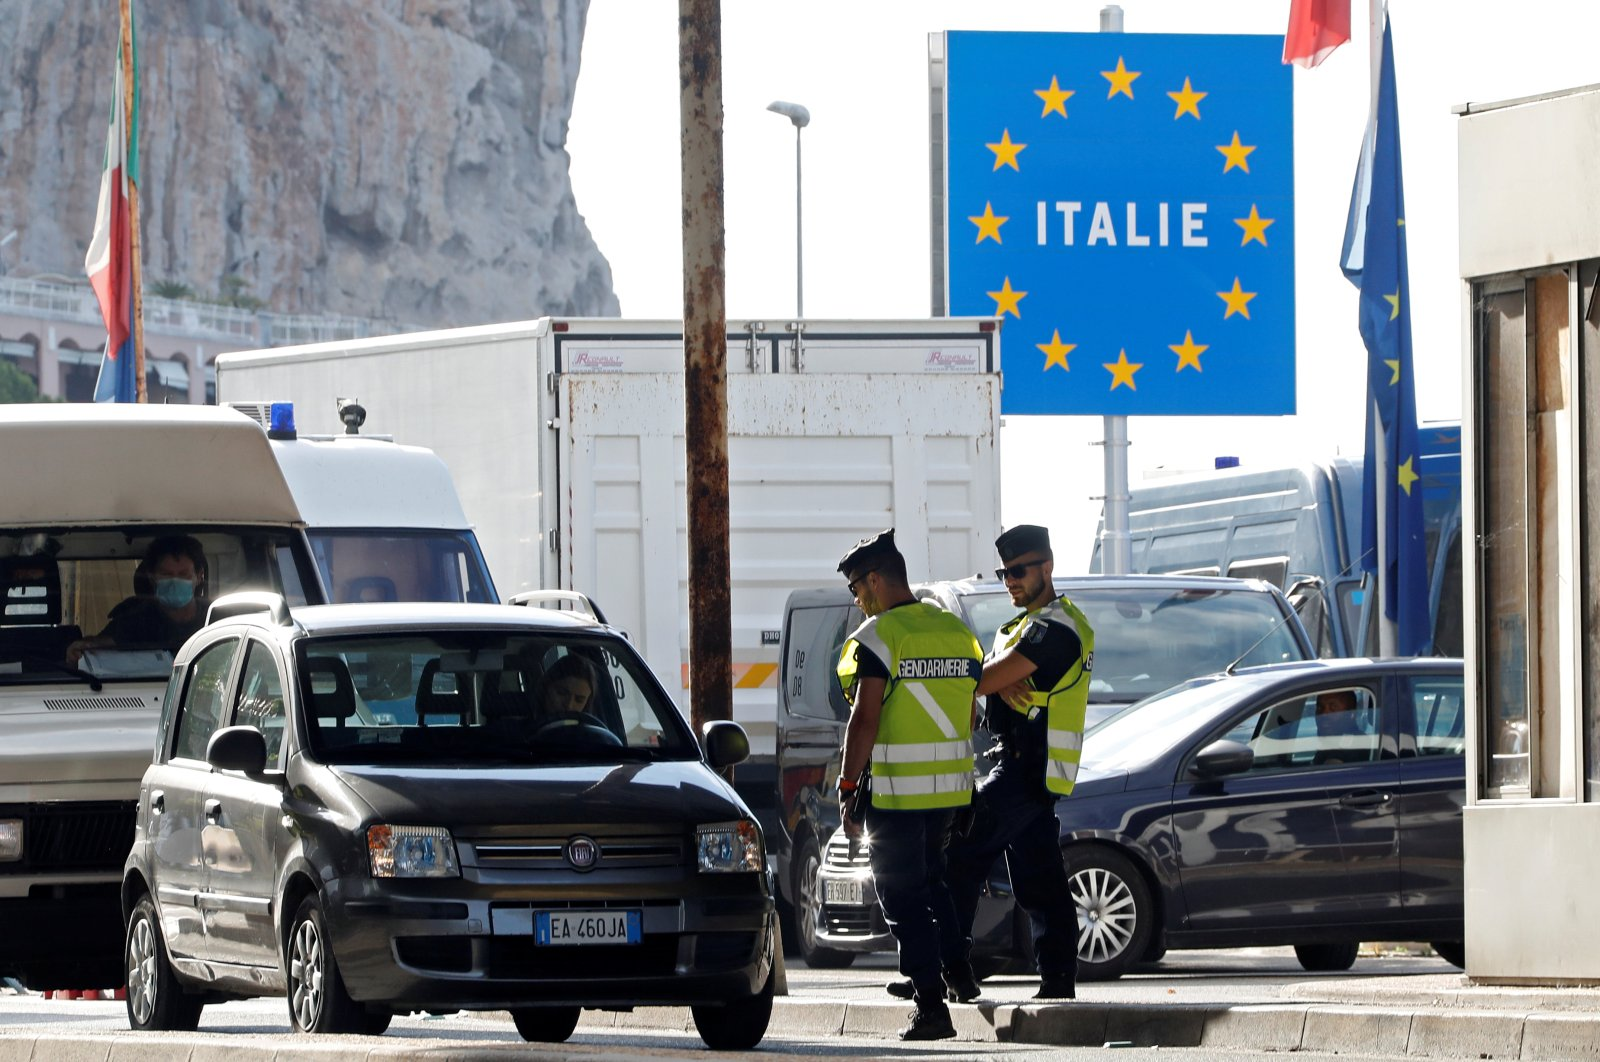 French gendarmes approach a car driver at the border check point Saint-Ludovic at the Franco-Italian border, after France reopened its border to Italians as COVID-19 travel restrictions across Europe are gradually eased, in Menton, France, June 15, 2020. (Reuters Photo)